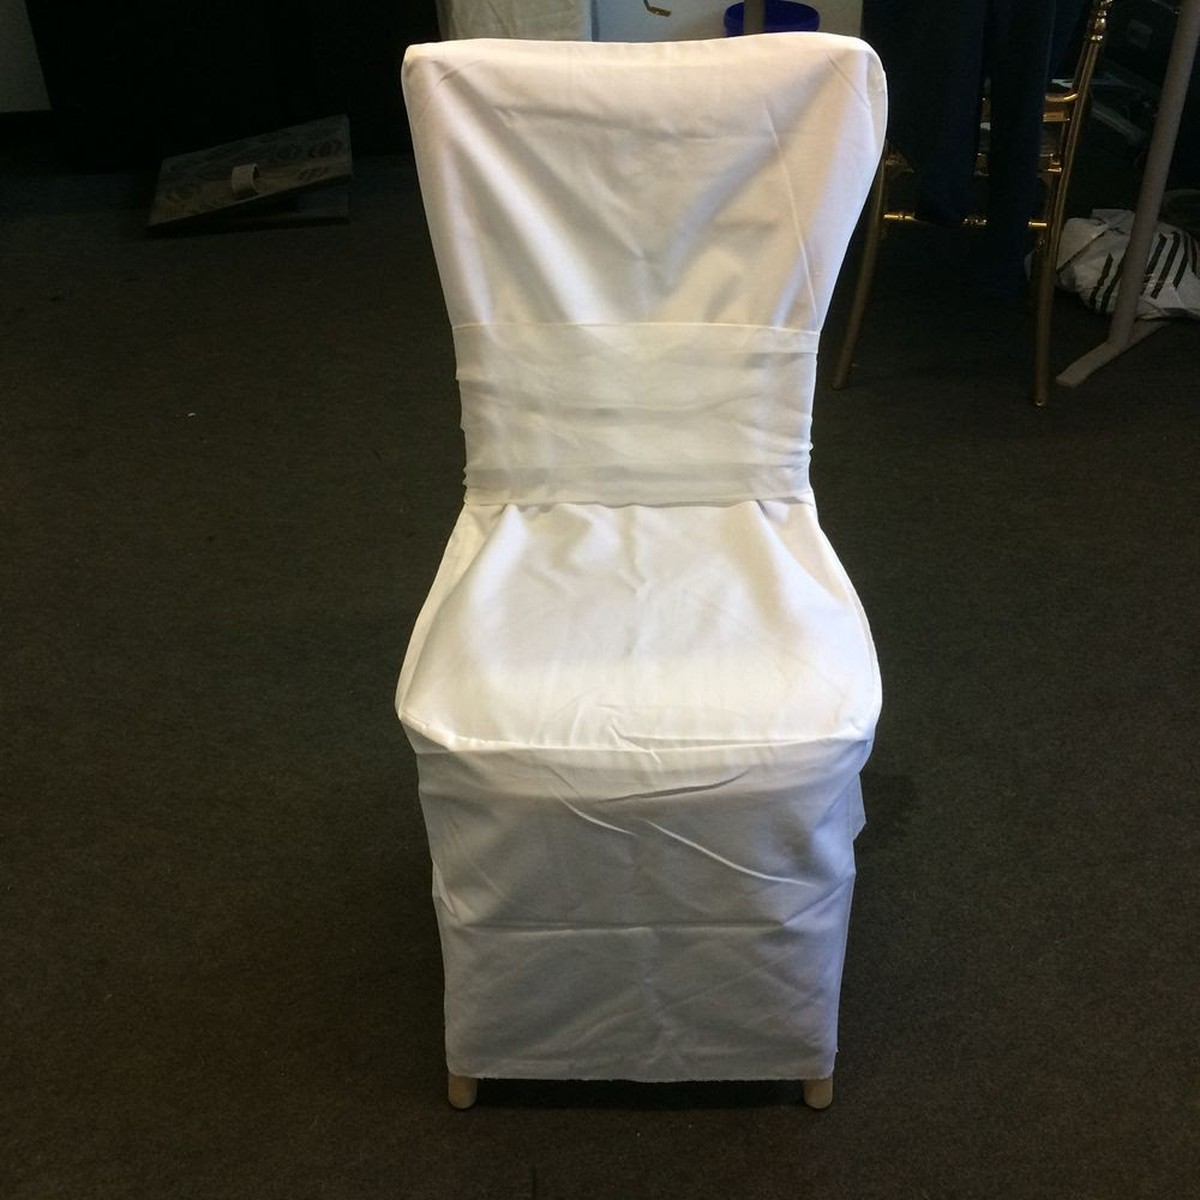 chair covers white linen tommy bahama lounge secondhand catering equipment table and decor